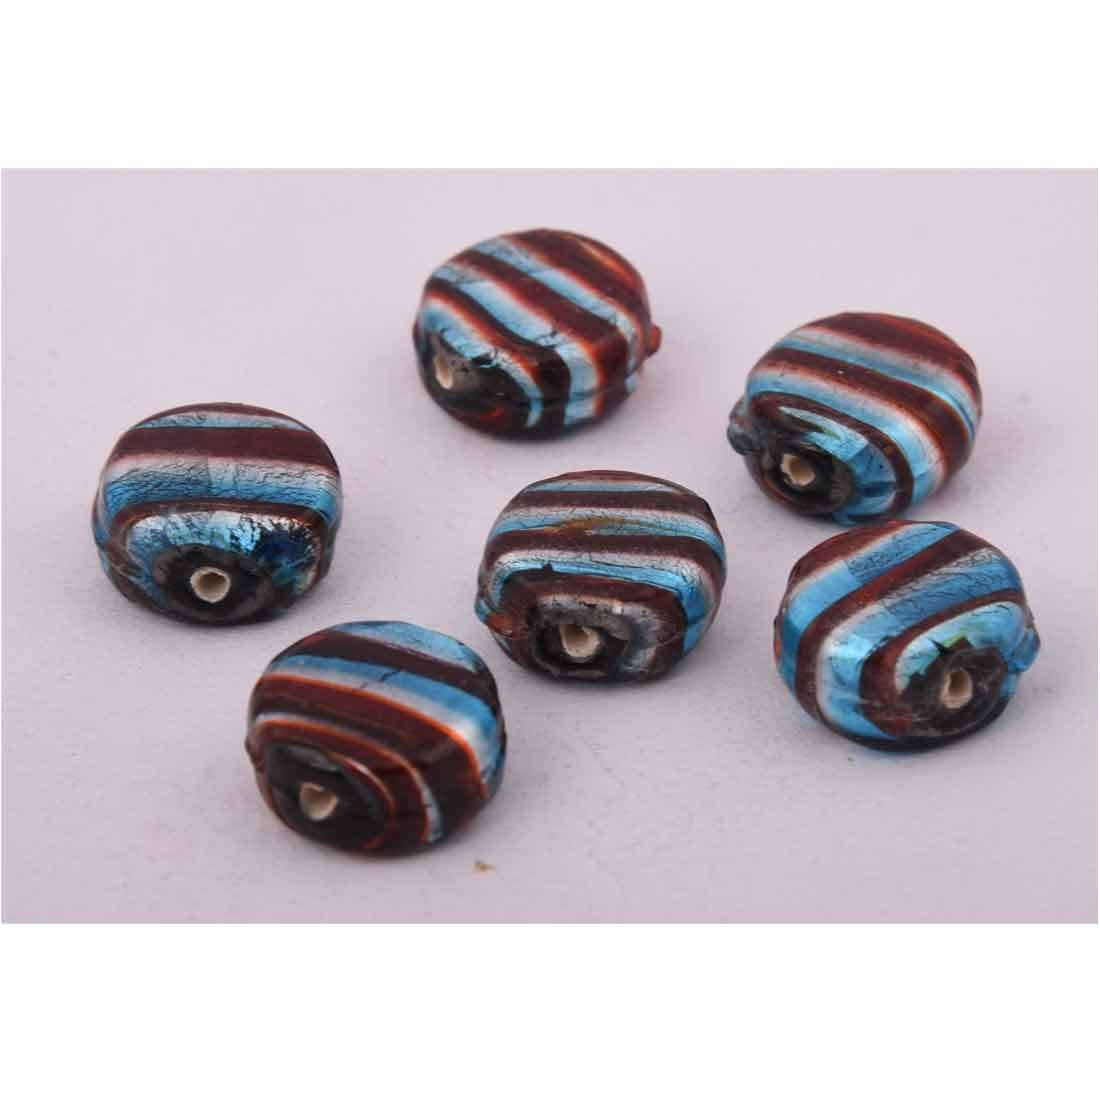 Beads India 1700075 Lampwork Handcrafted Glass Beads/Discounts Above 500 pcs